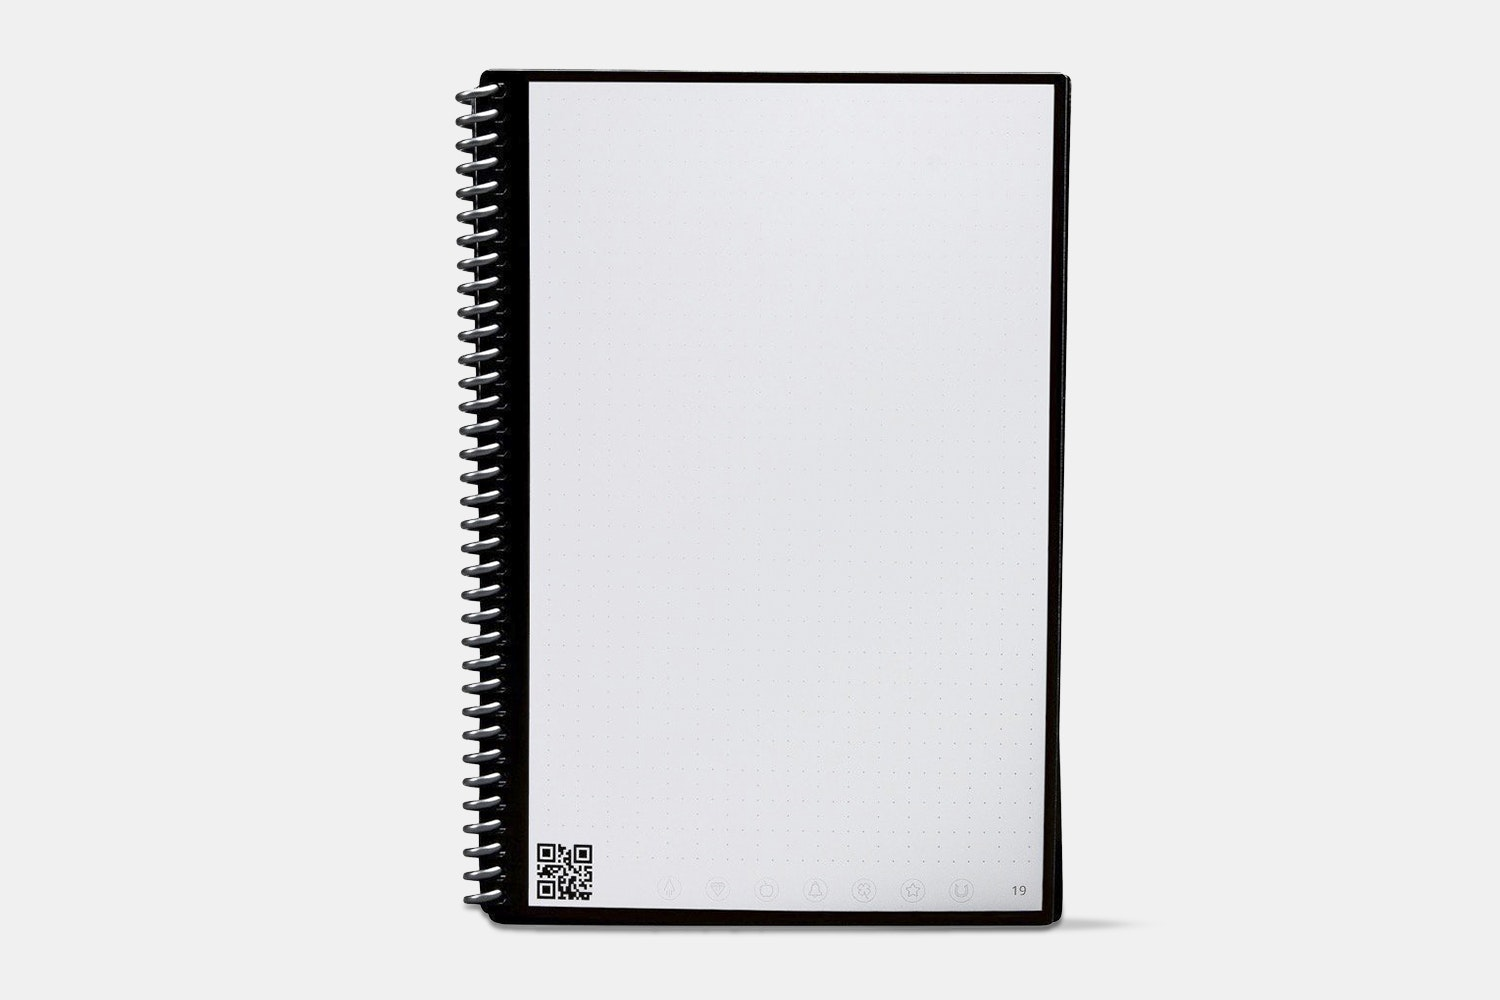 Rocketbook Wave & Everlast Smart Notebooks (2-Pack)